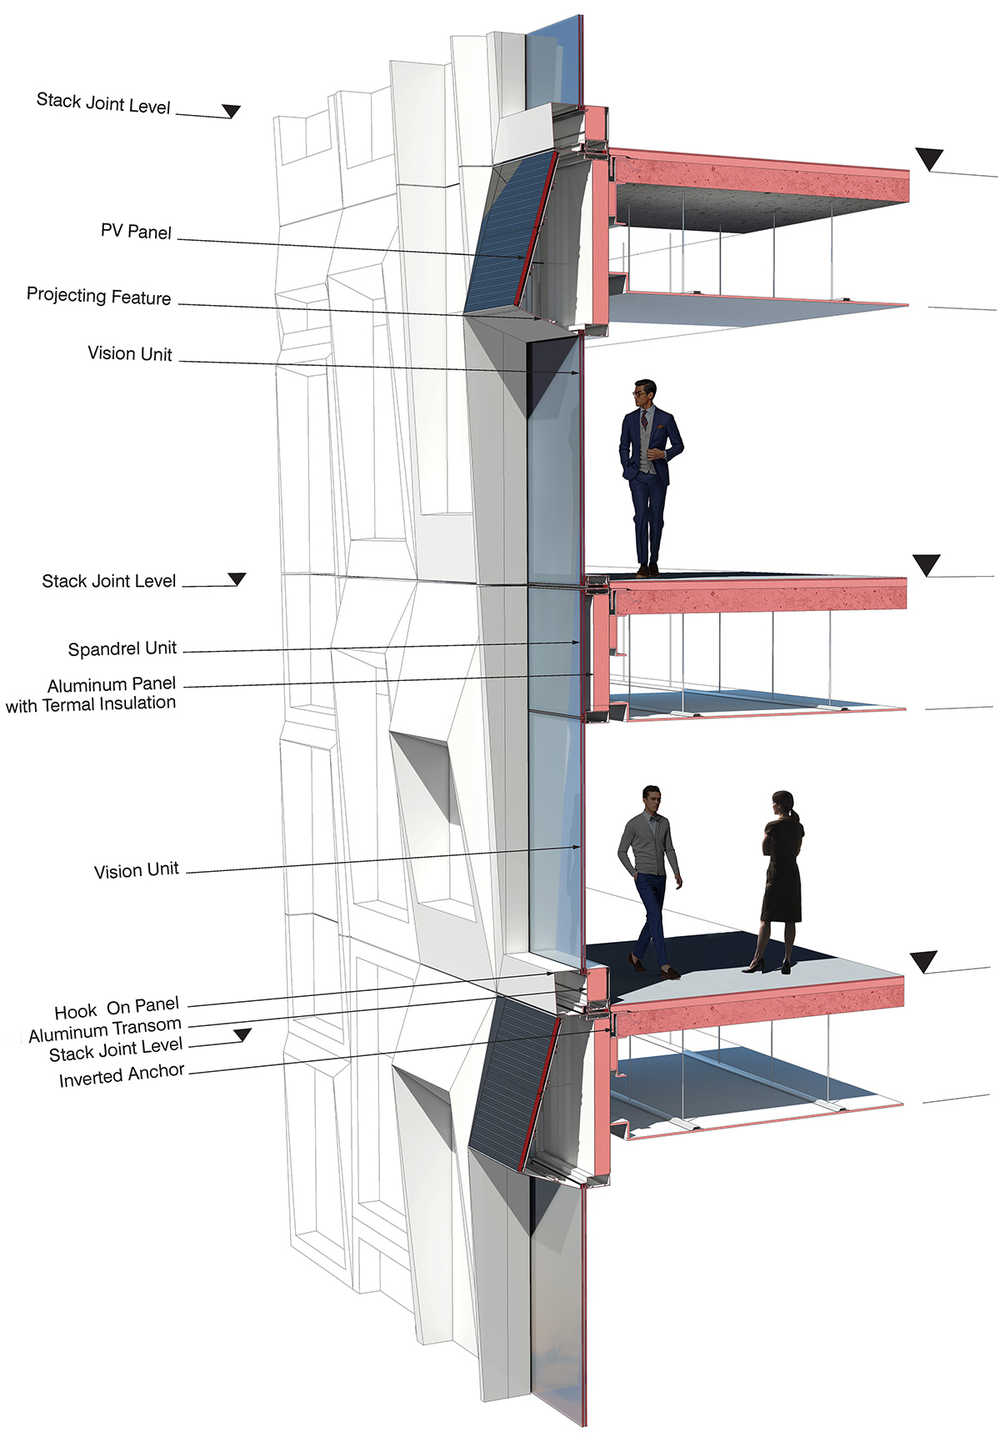 Study Hanwha Headquarters Responsive Facade Part 2